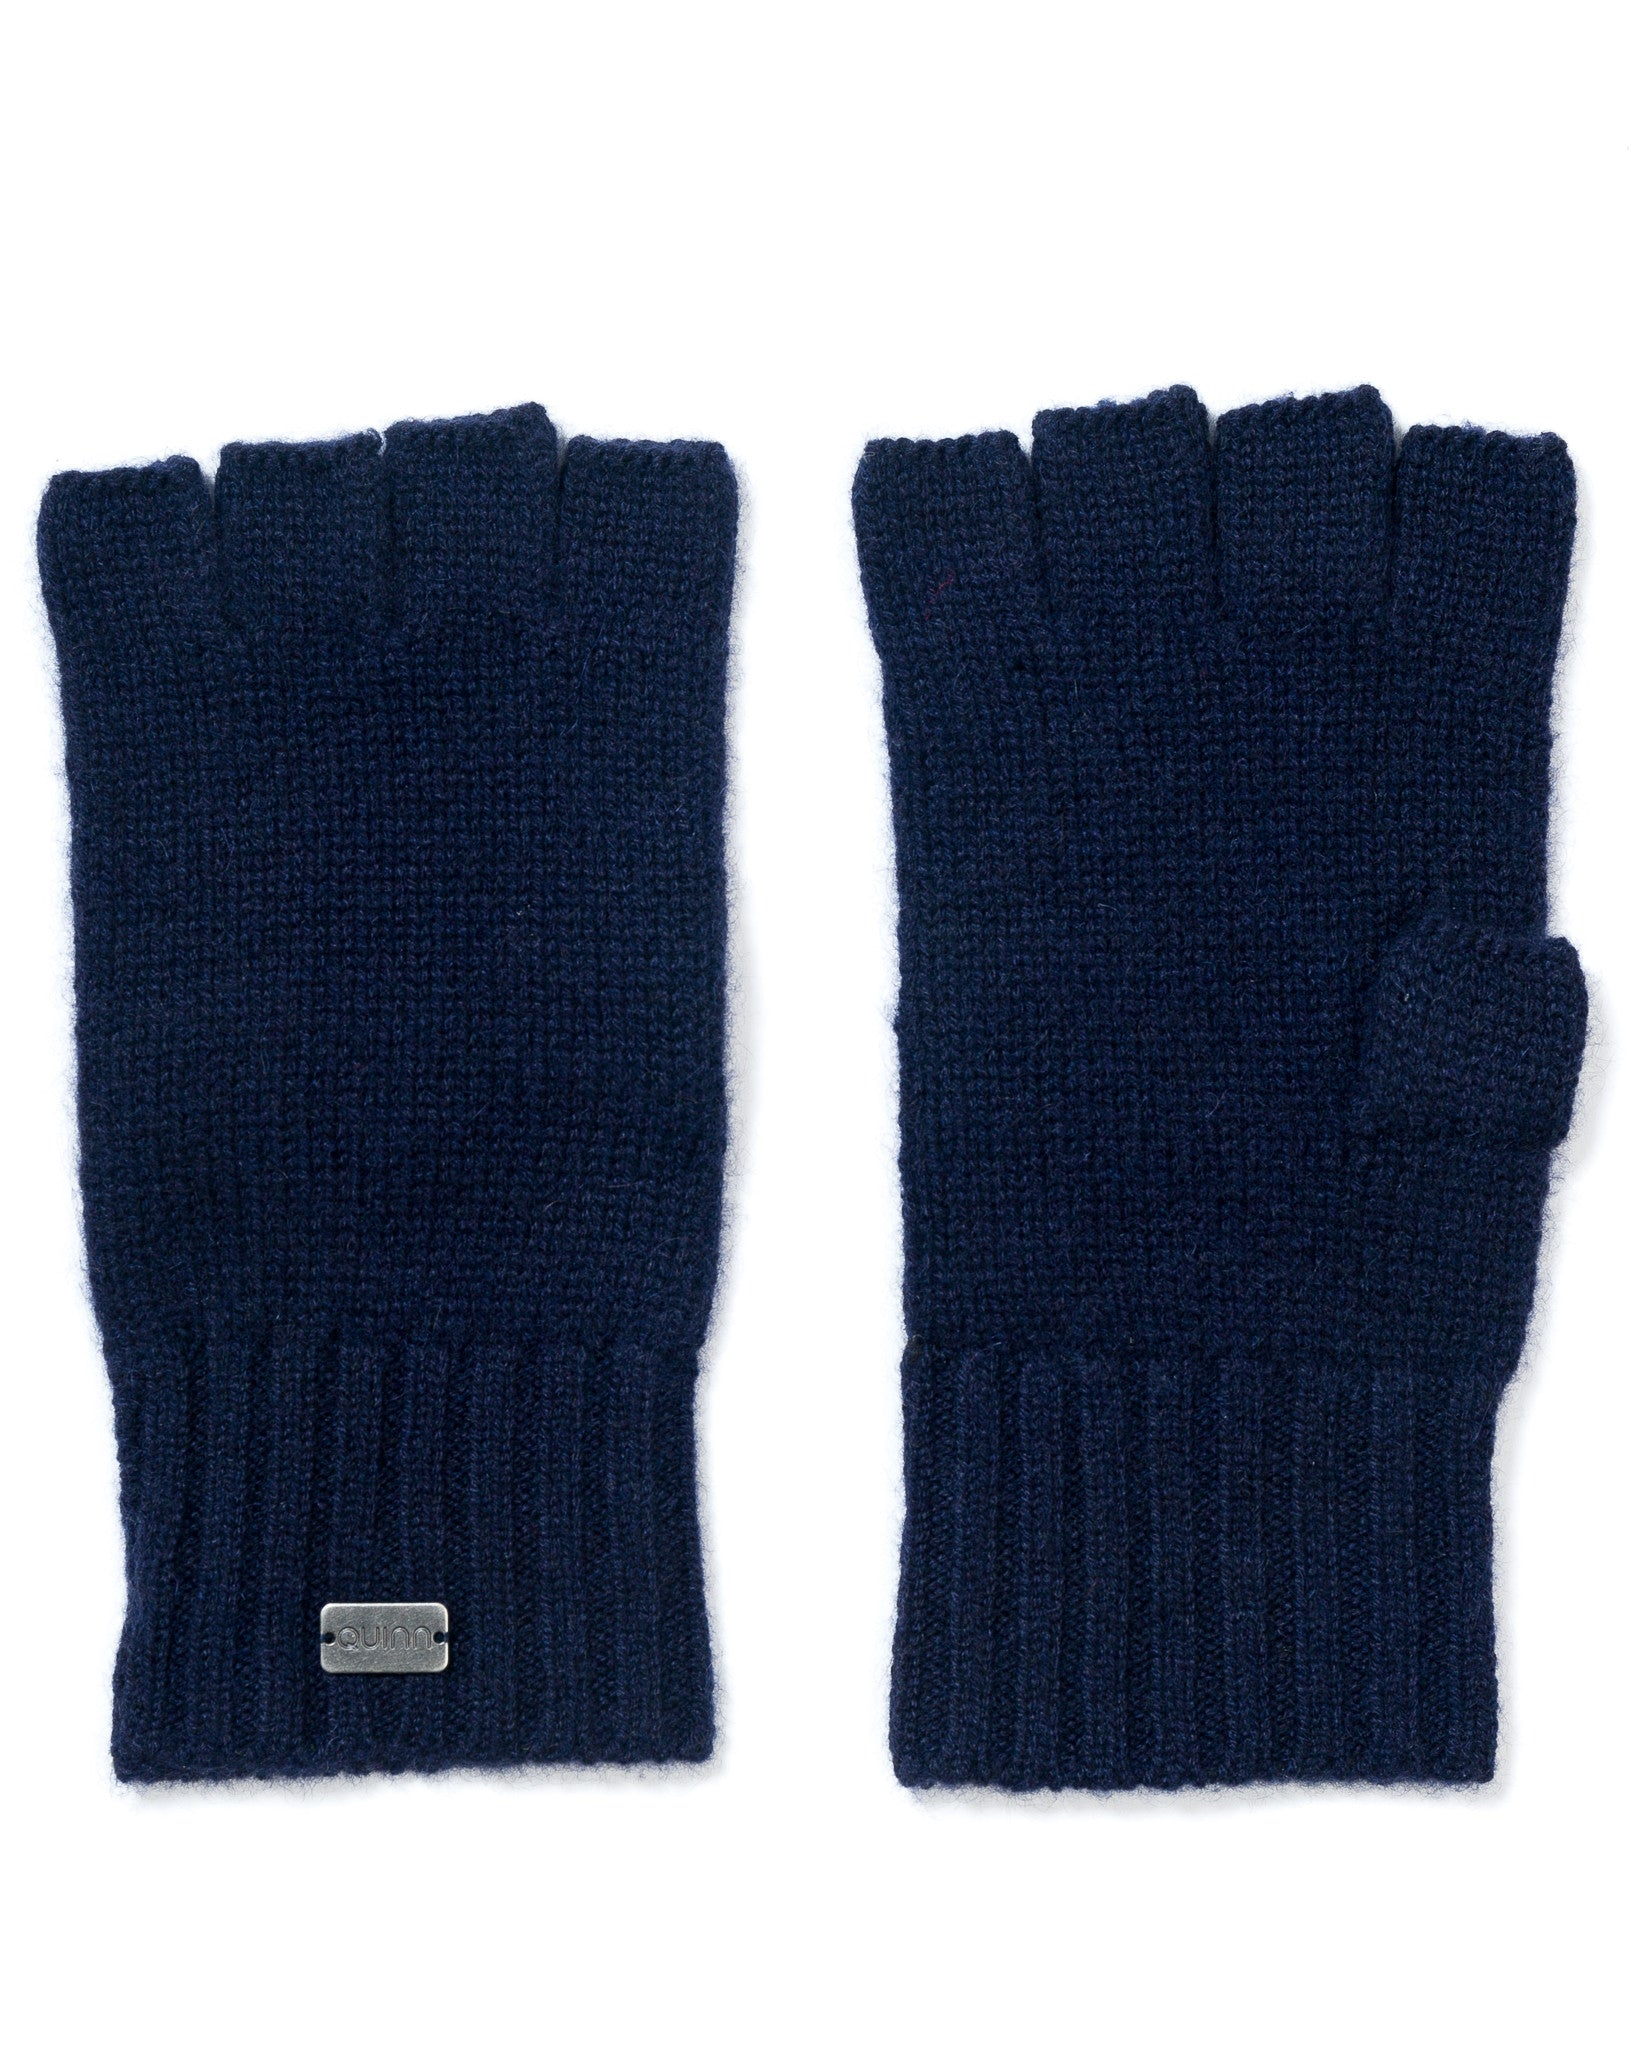 Customizable Irwin Fingerless Gloves